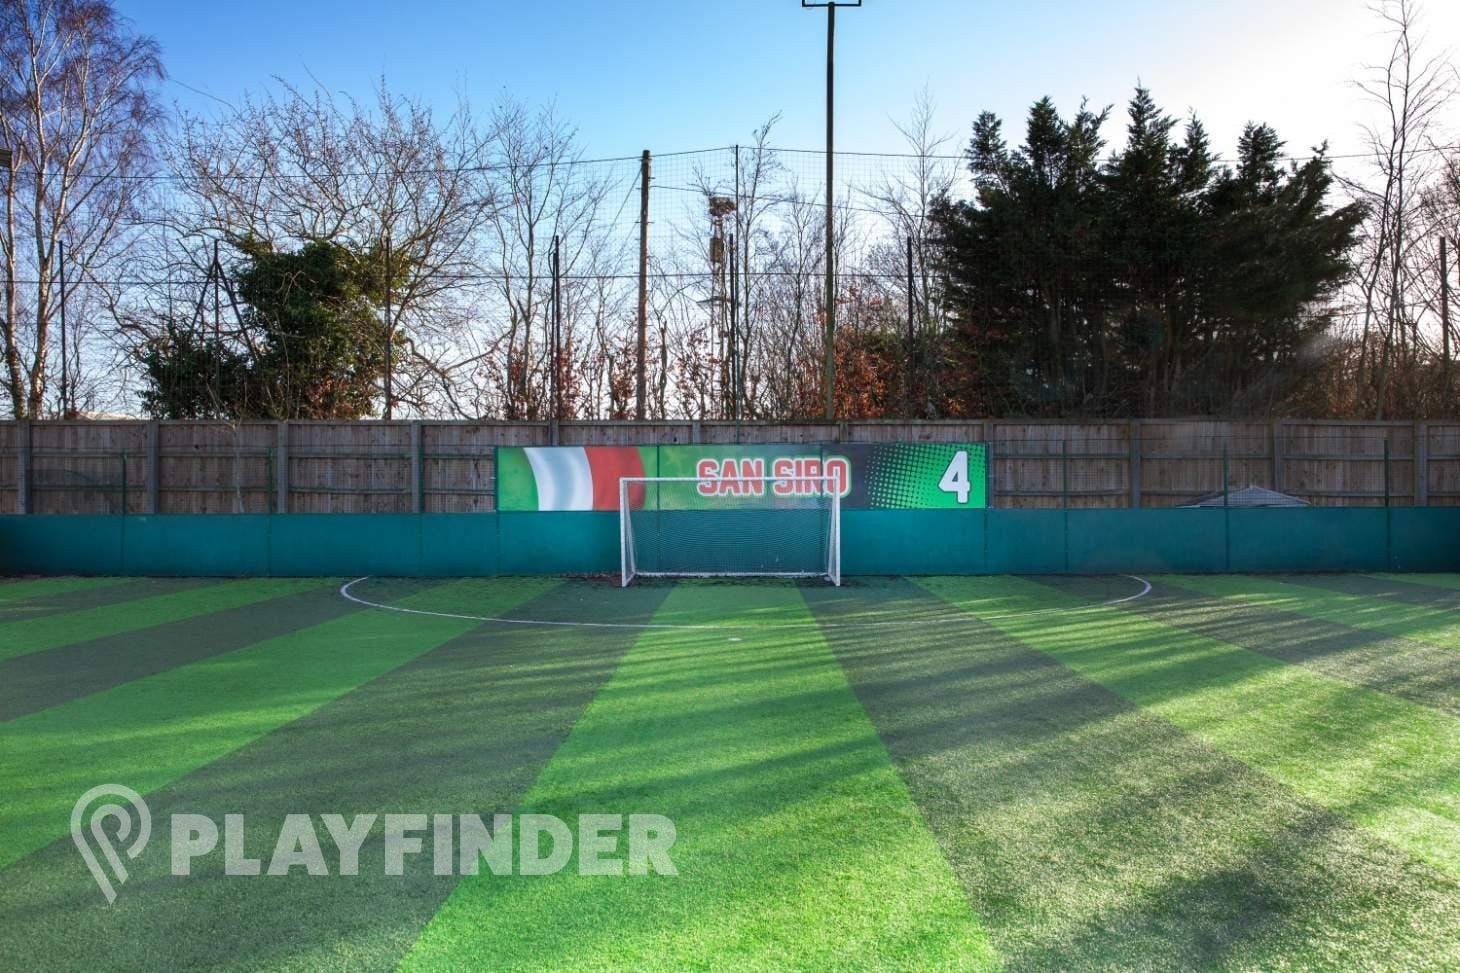 Goals Tolworth 7 a side | 3G Astroturf football pitch